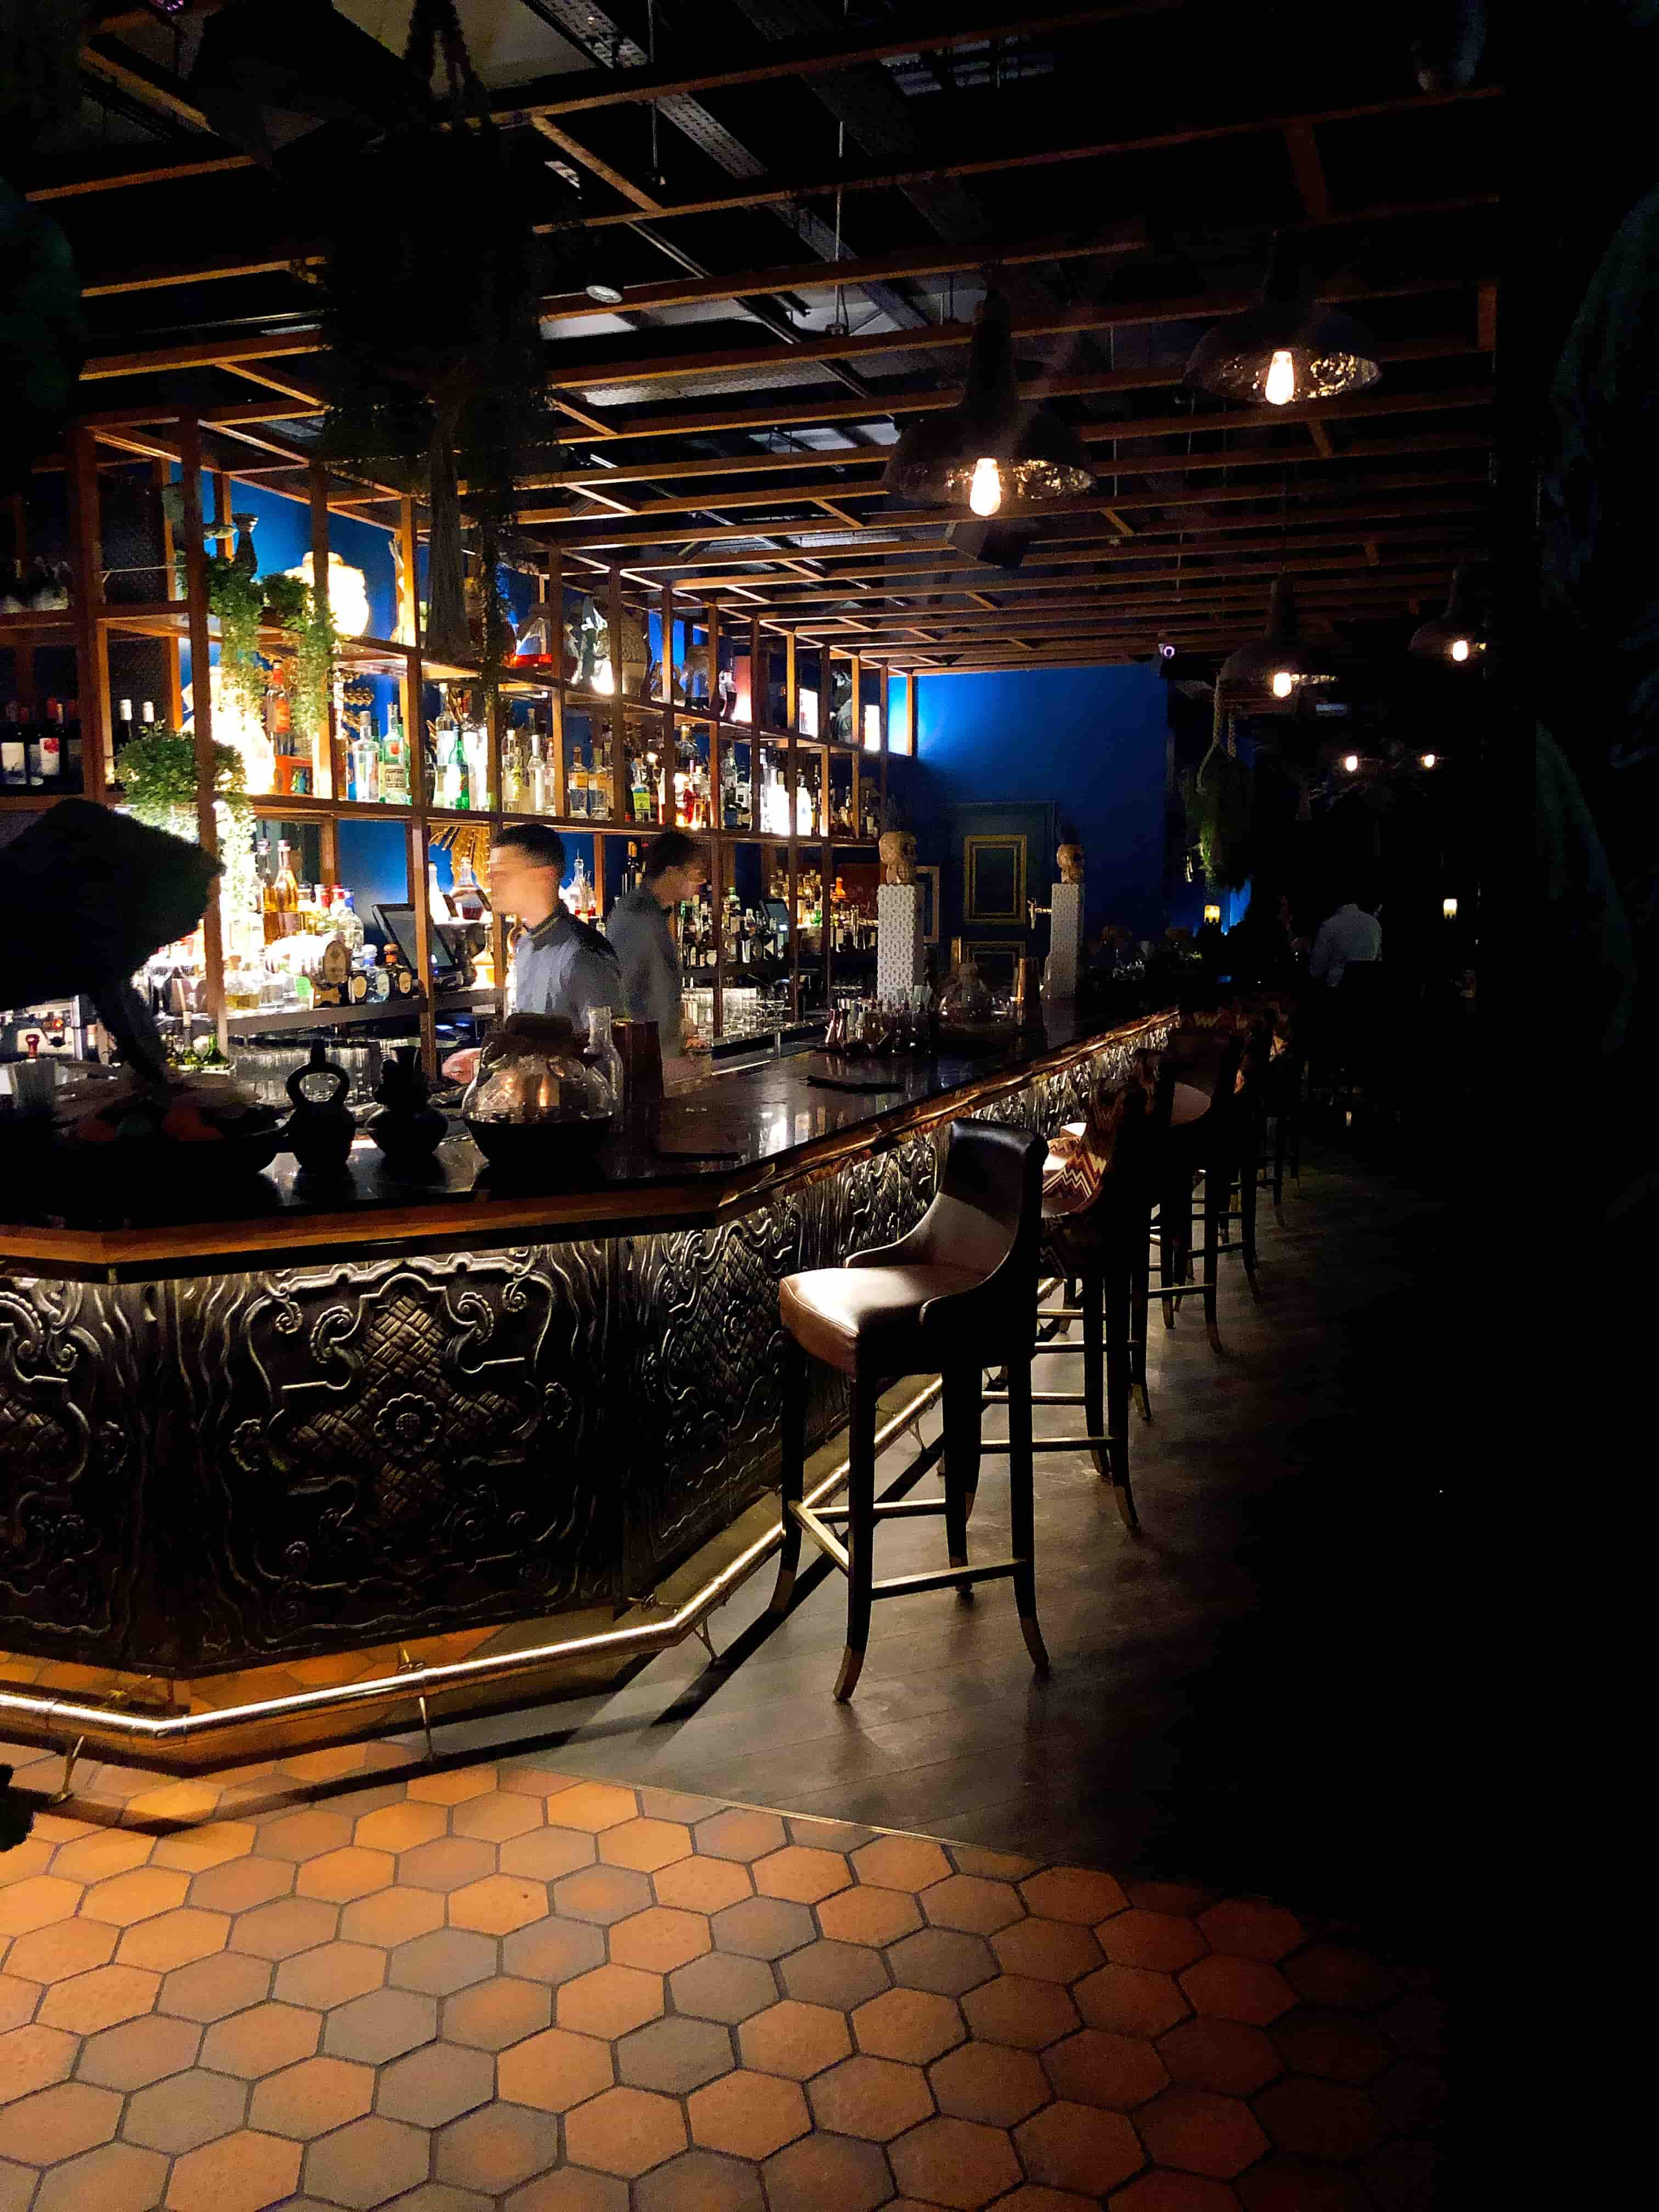 Taken by me, absolutely beautiful bar area